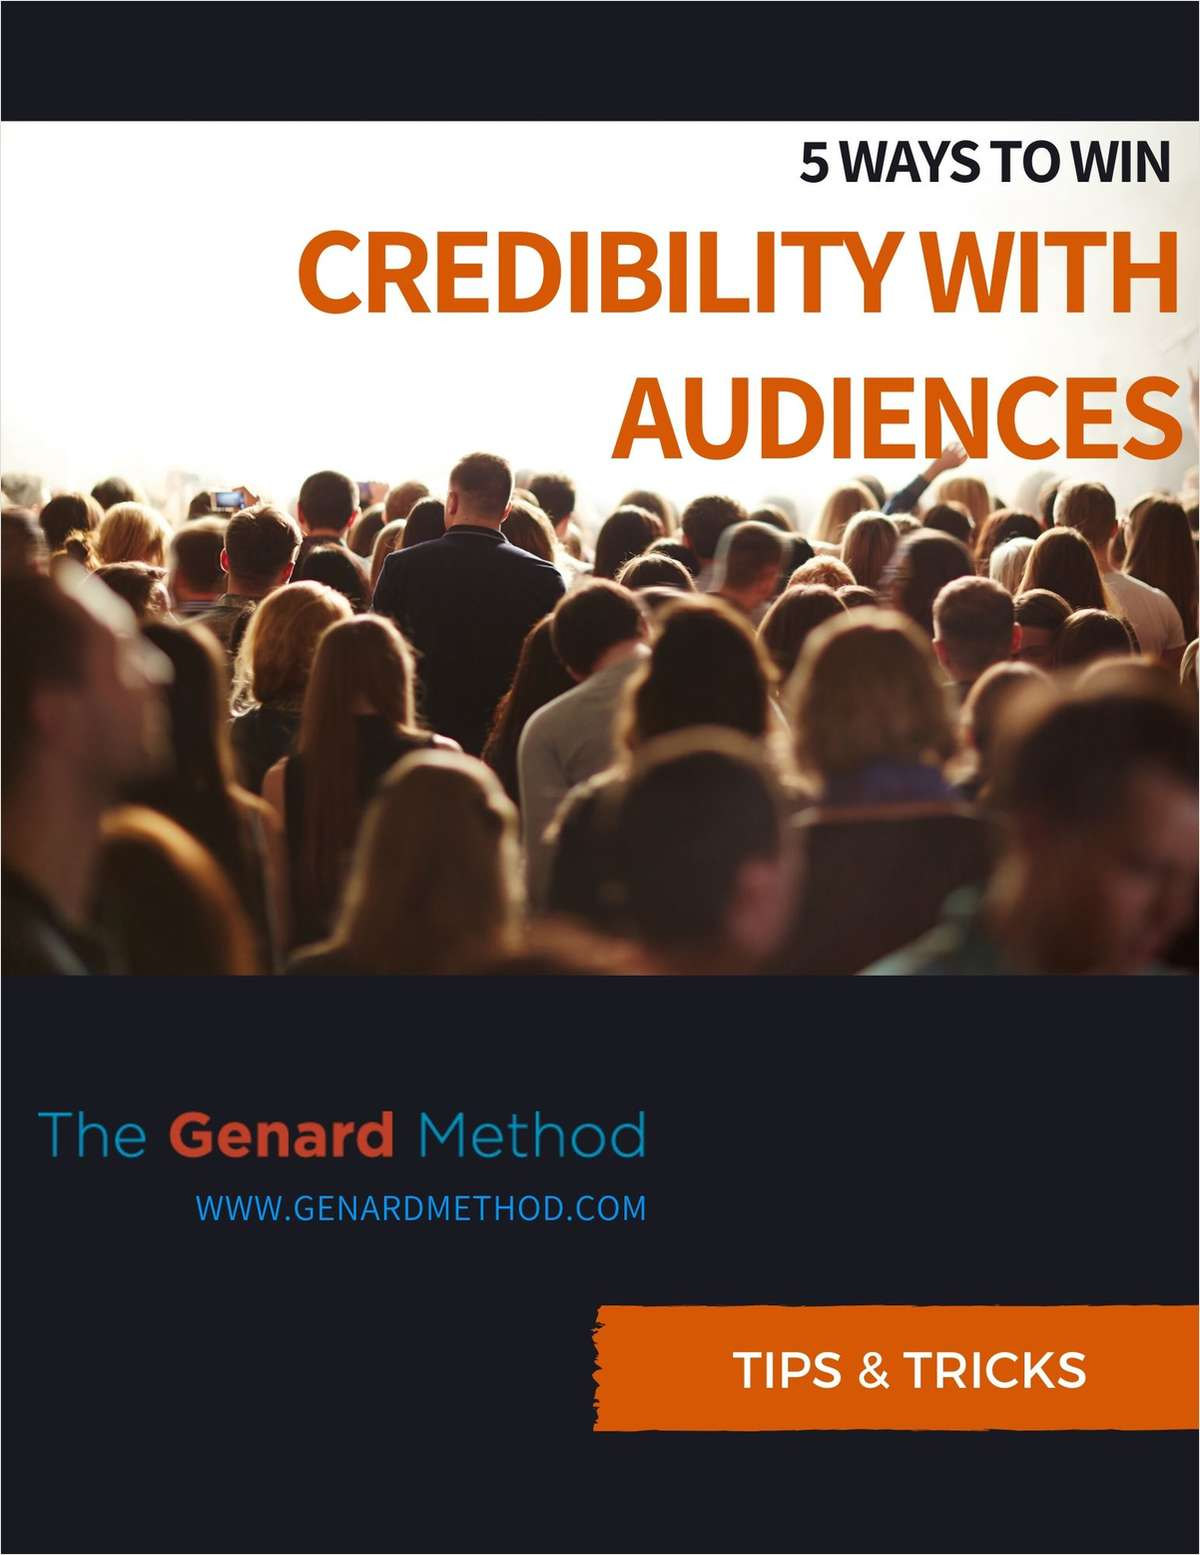 5 Ways to Win Credibility with Audiences